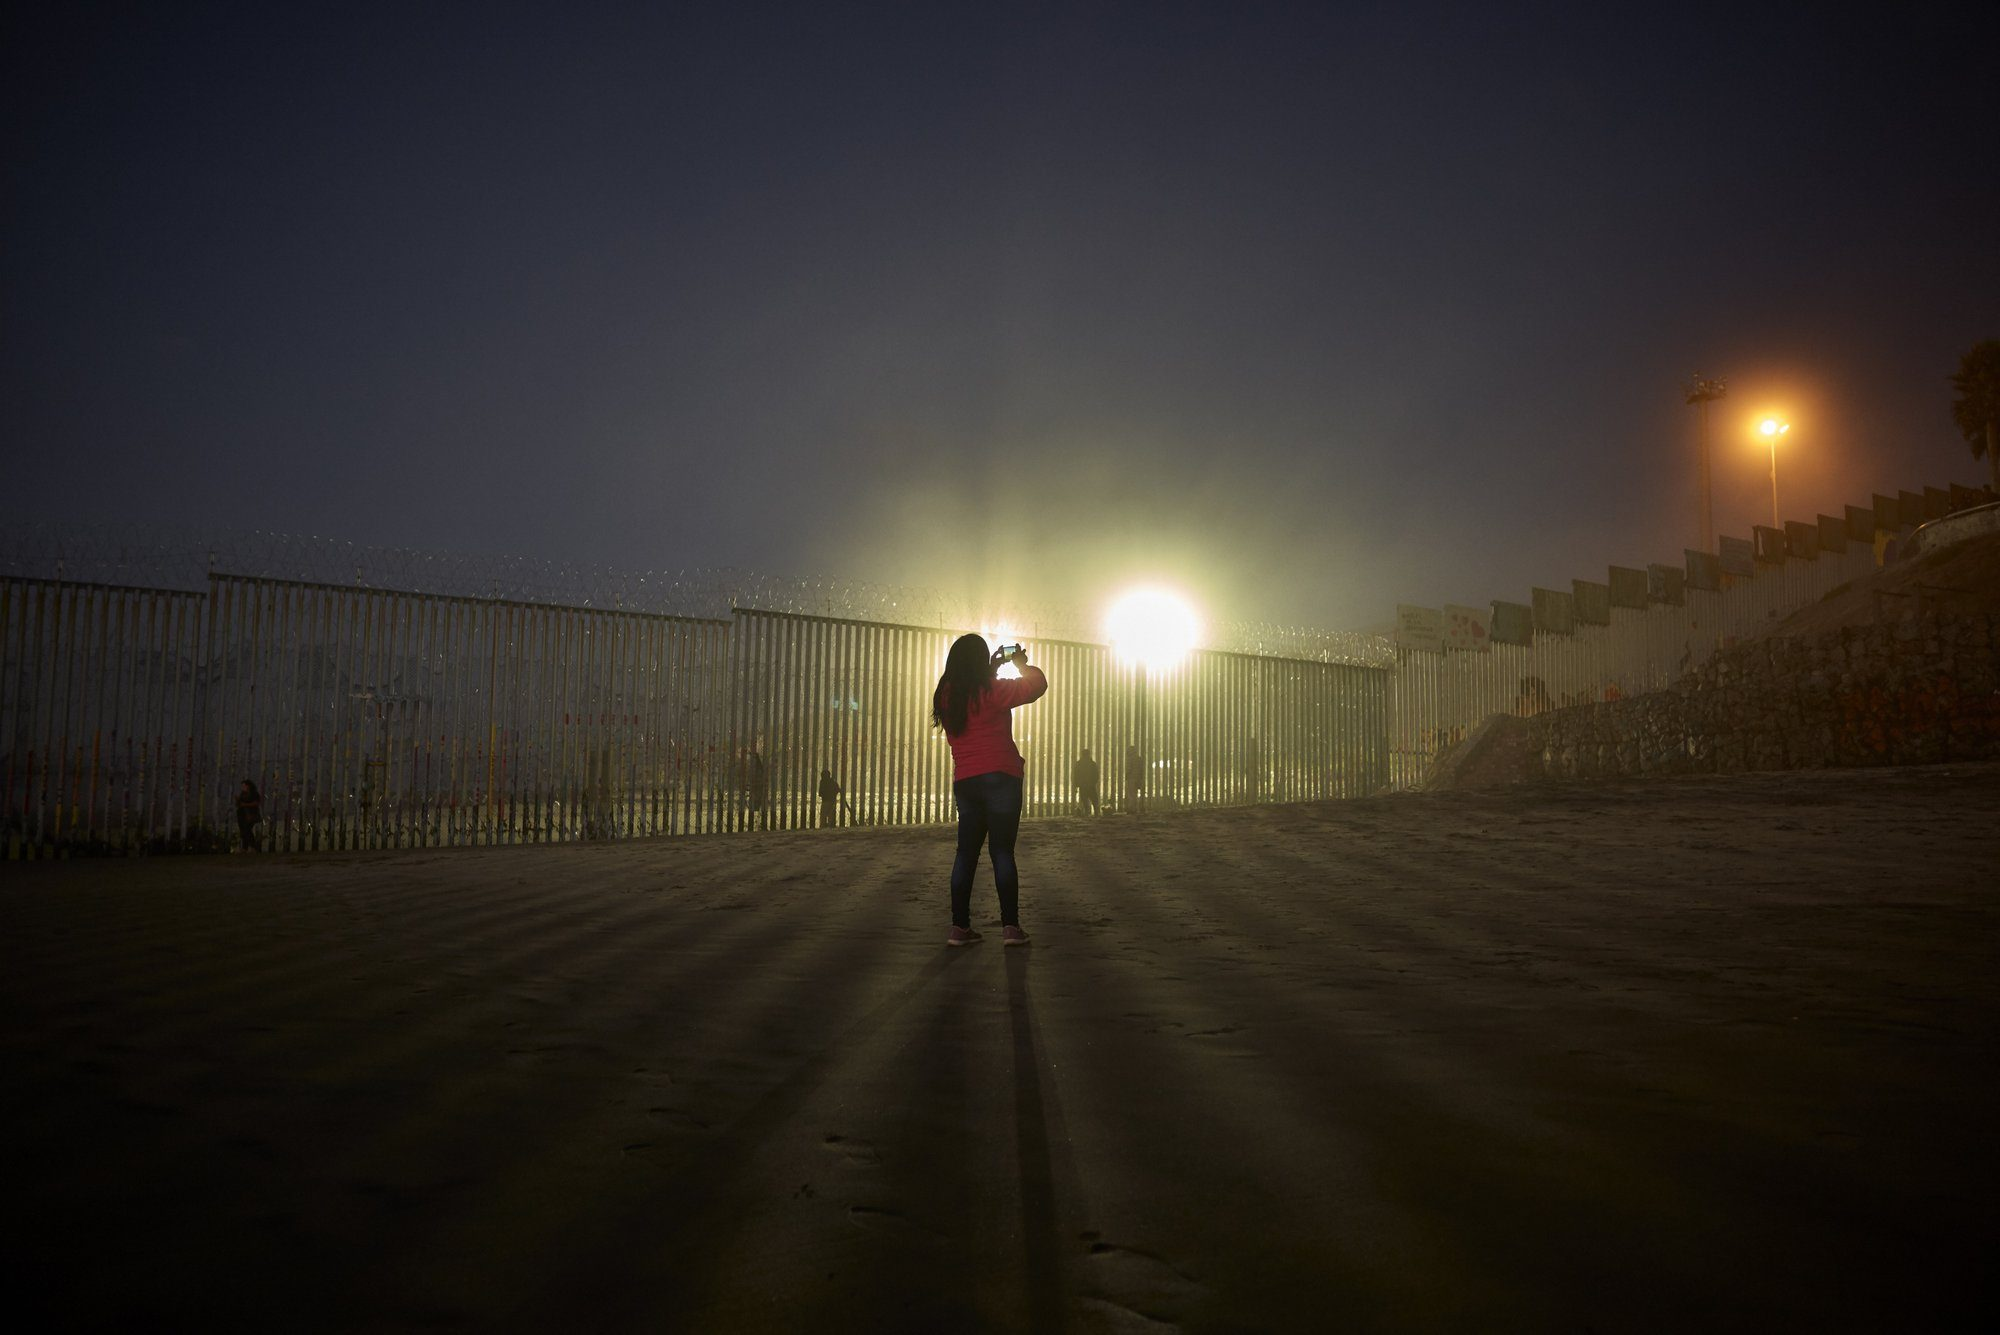 FILE - In this Jan. 10, 2019, file photo, a woman records with her phone, as floodlights from the United States light up the border wall, topped with razor wire along the beach in Tijuana, Mexico. The government is working on replacing and adding fencing in various locations, and Trump in February declared a national emergency to get more funding for the wall. (AP Photo/Gregory Bull, File)